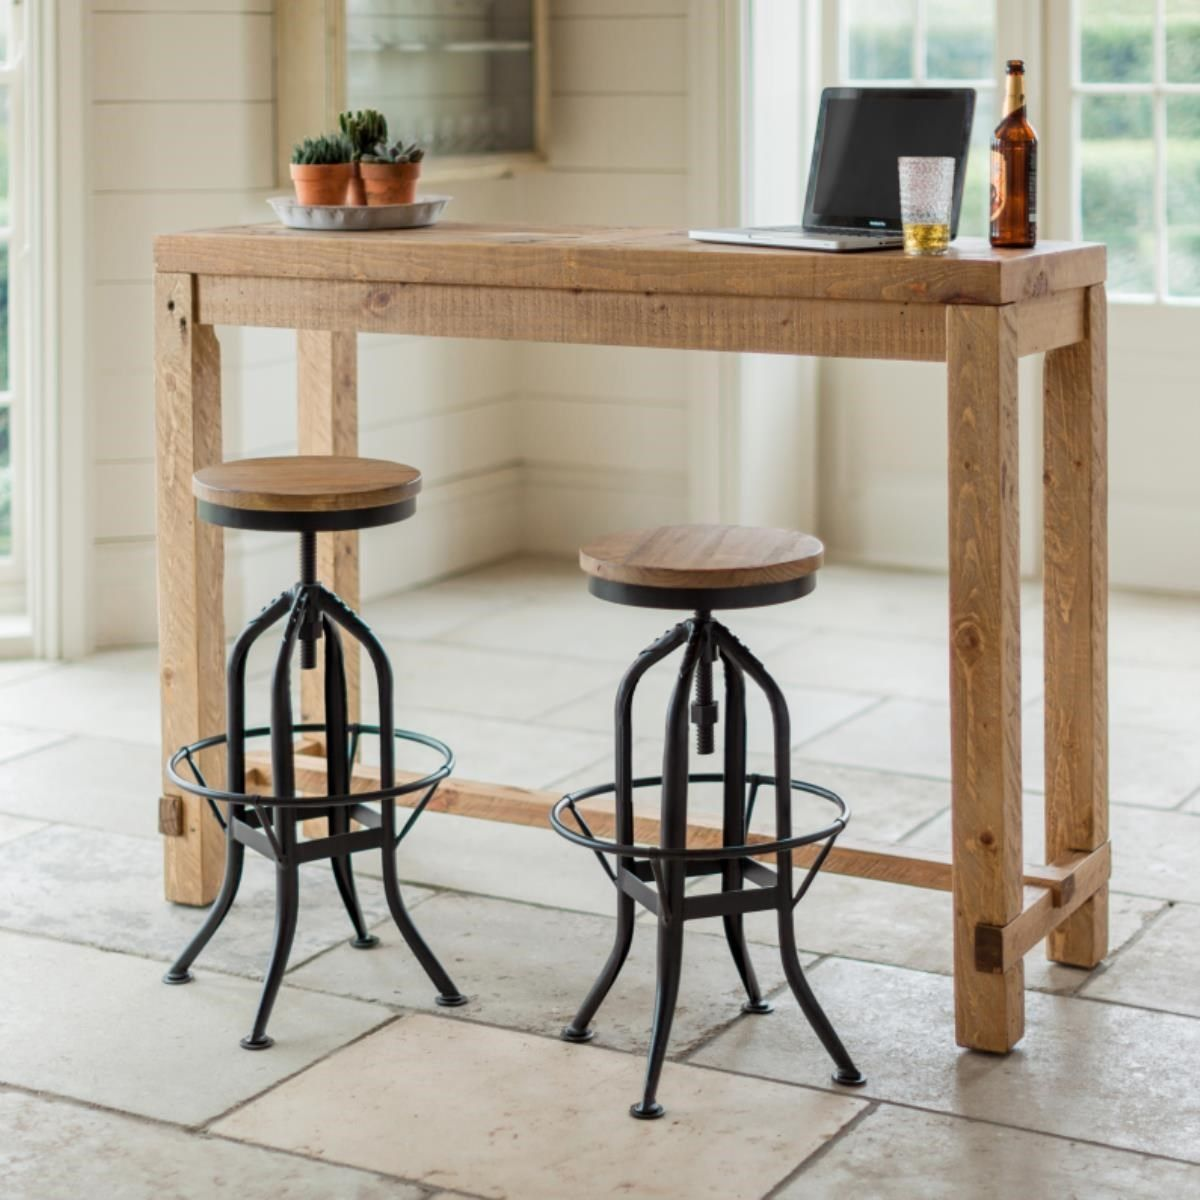 A tall bar table handcrafted from reclaimed pine in a ...